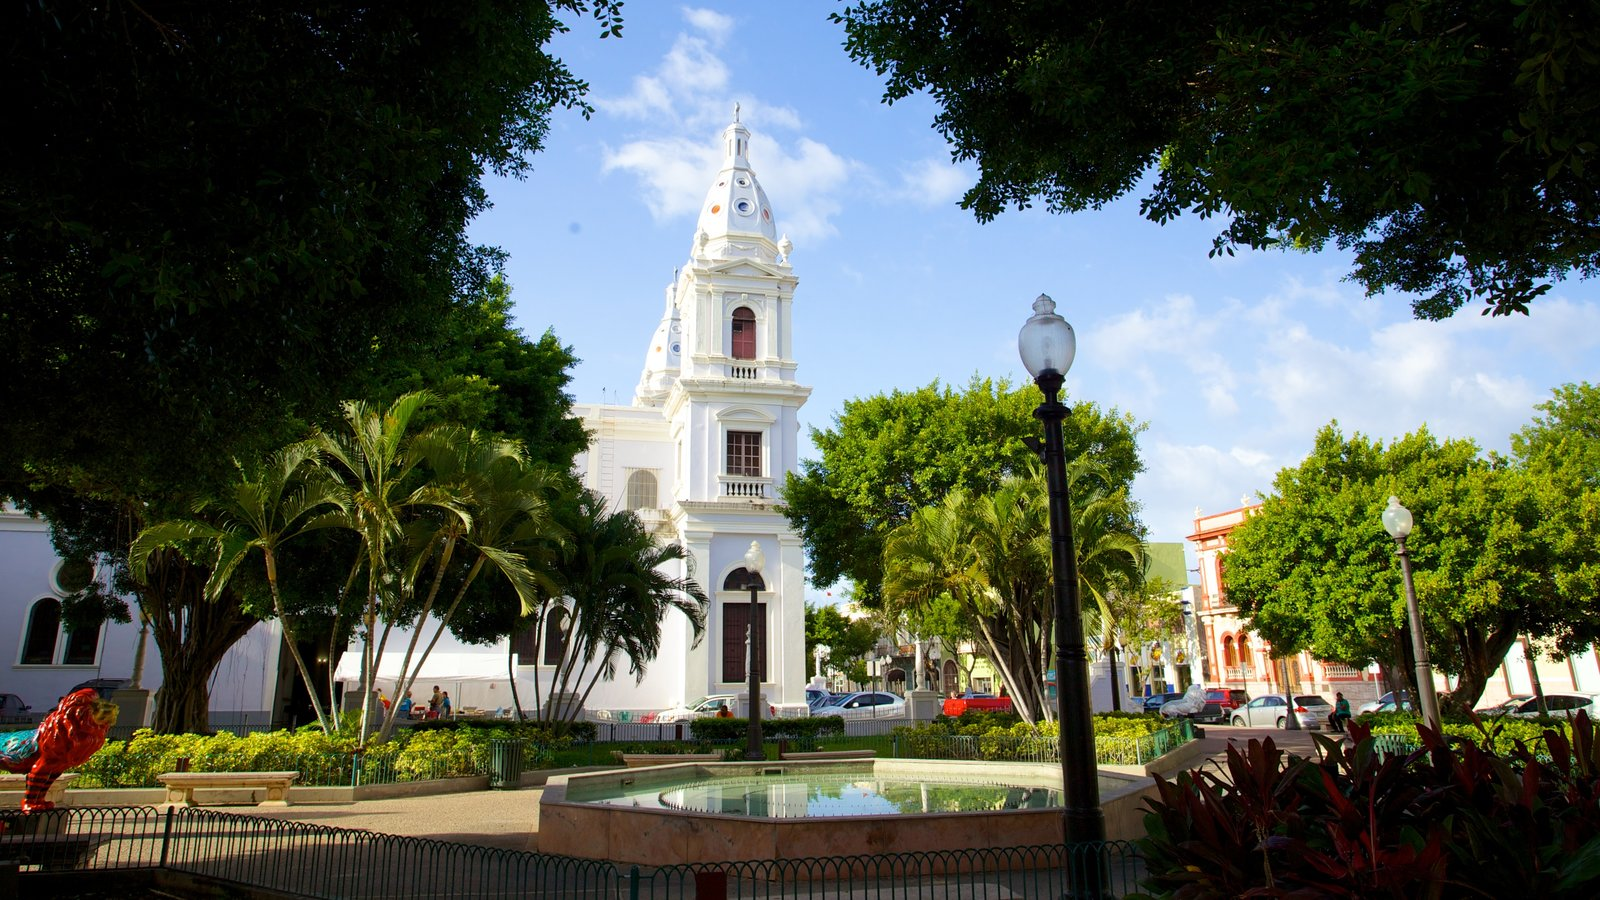 Parque de Bombas which includes a church or cathedral and street scenes